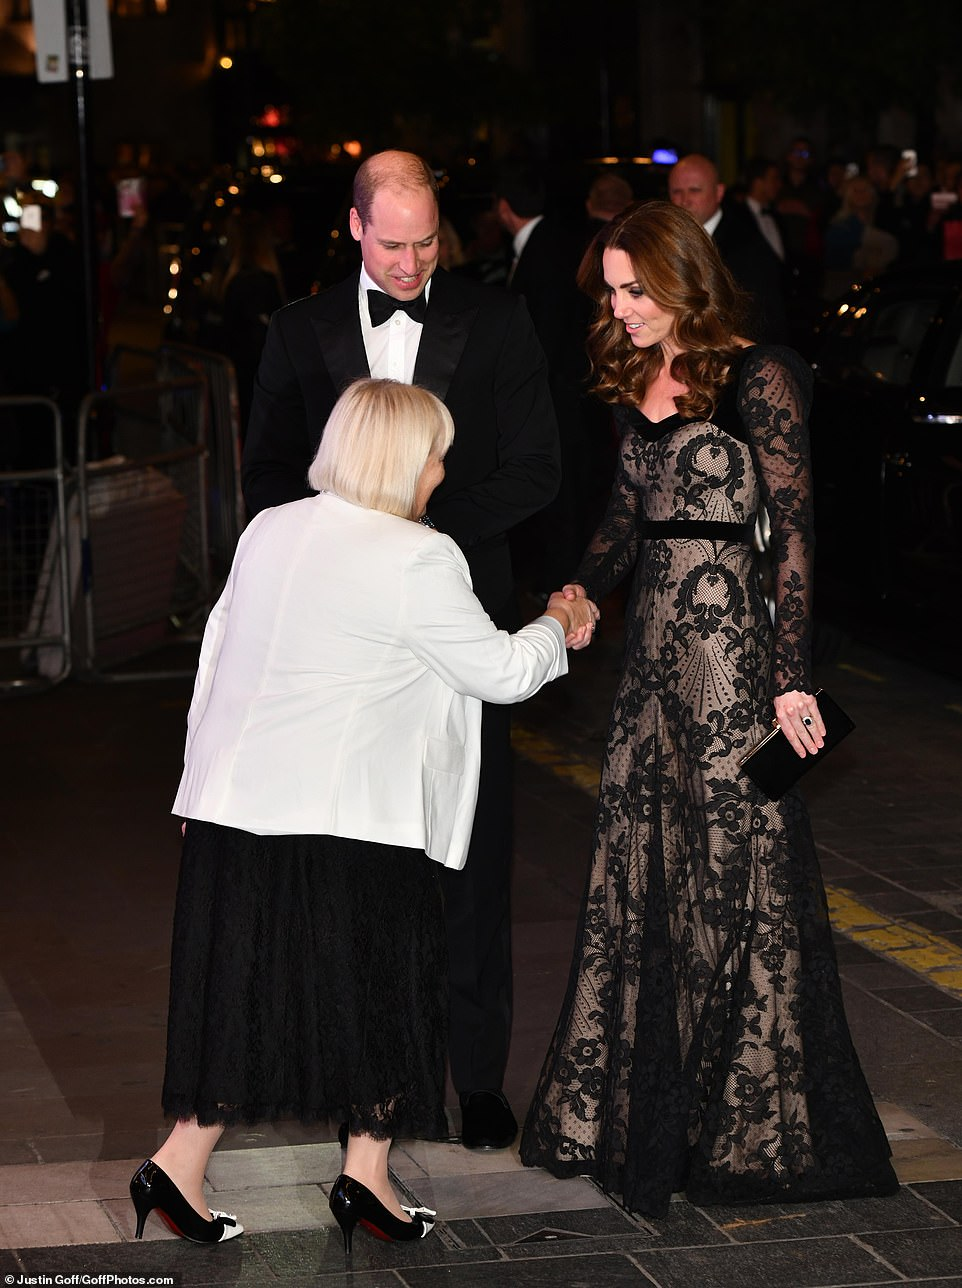 The event is in aid of the Royal Variety Charity, formally known as The Entertainment Artistes' Benevolent Fund, of which The Queen is Patron. Pictured: Kate shakes hands with an official at the event